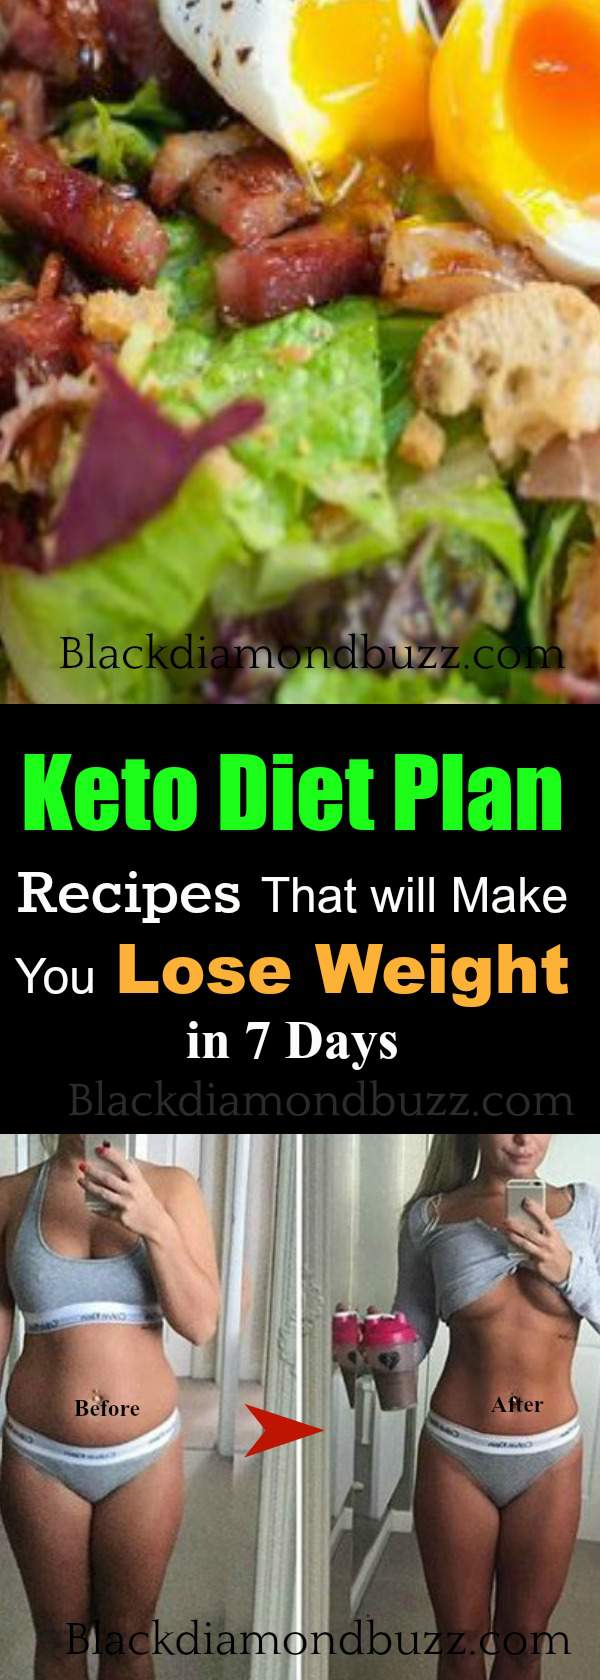 Keto Diet Plan Recipes That Will Make You Lose Weight in 7 Days 2